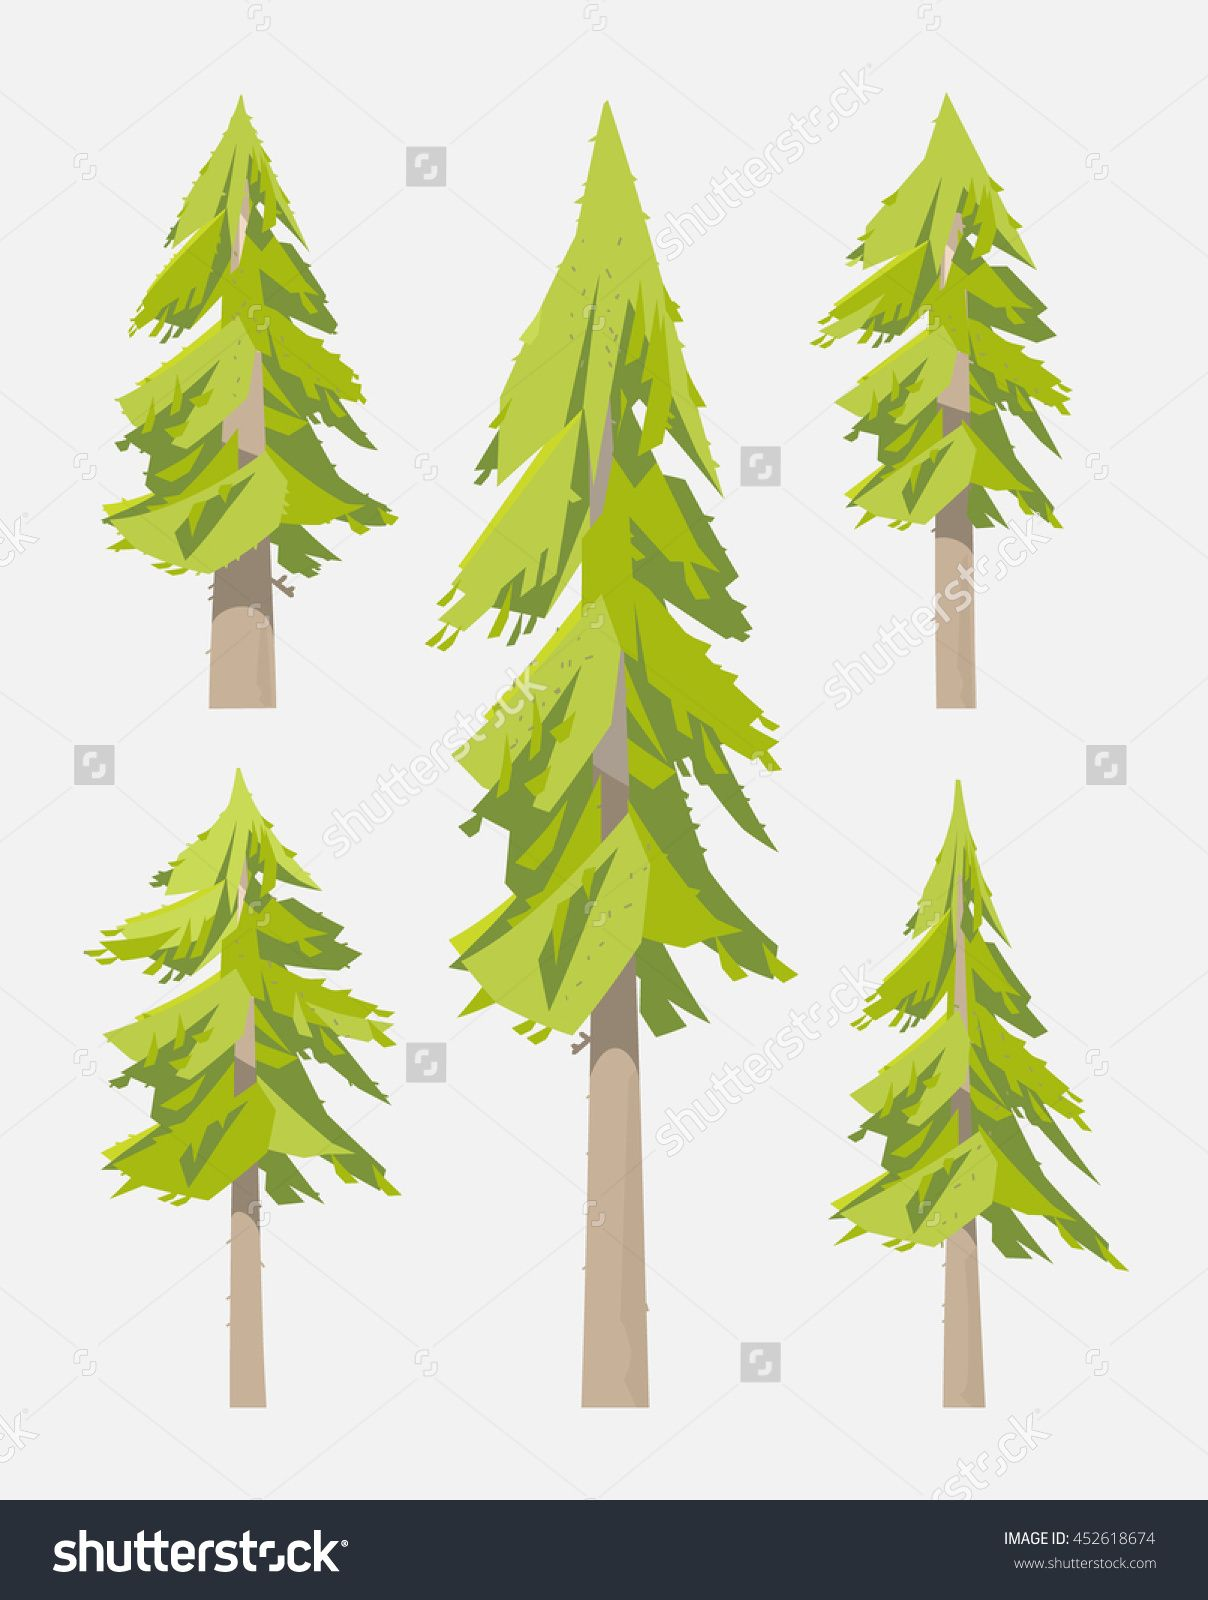 Spruce Set The Fir Tree Forest A Set Of Pine Trees Fir Grove A Thorn Tree Branches With Needles Pine Val Tree Illustration Cartoon Trees Pine Tree Tattoo We have collected 49+ original and carefully picked cartoon pine tree cliparts in one place. pinterest